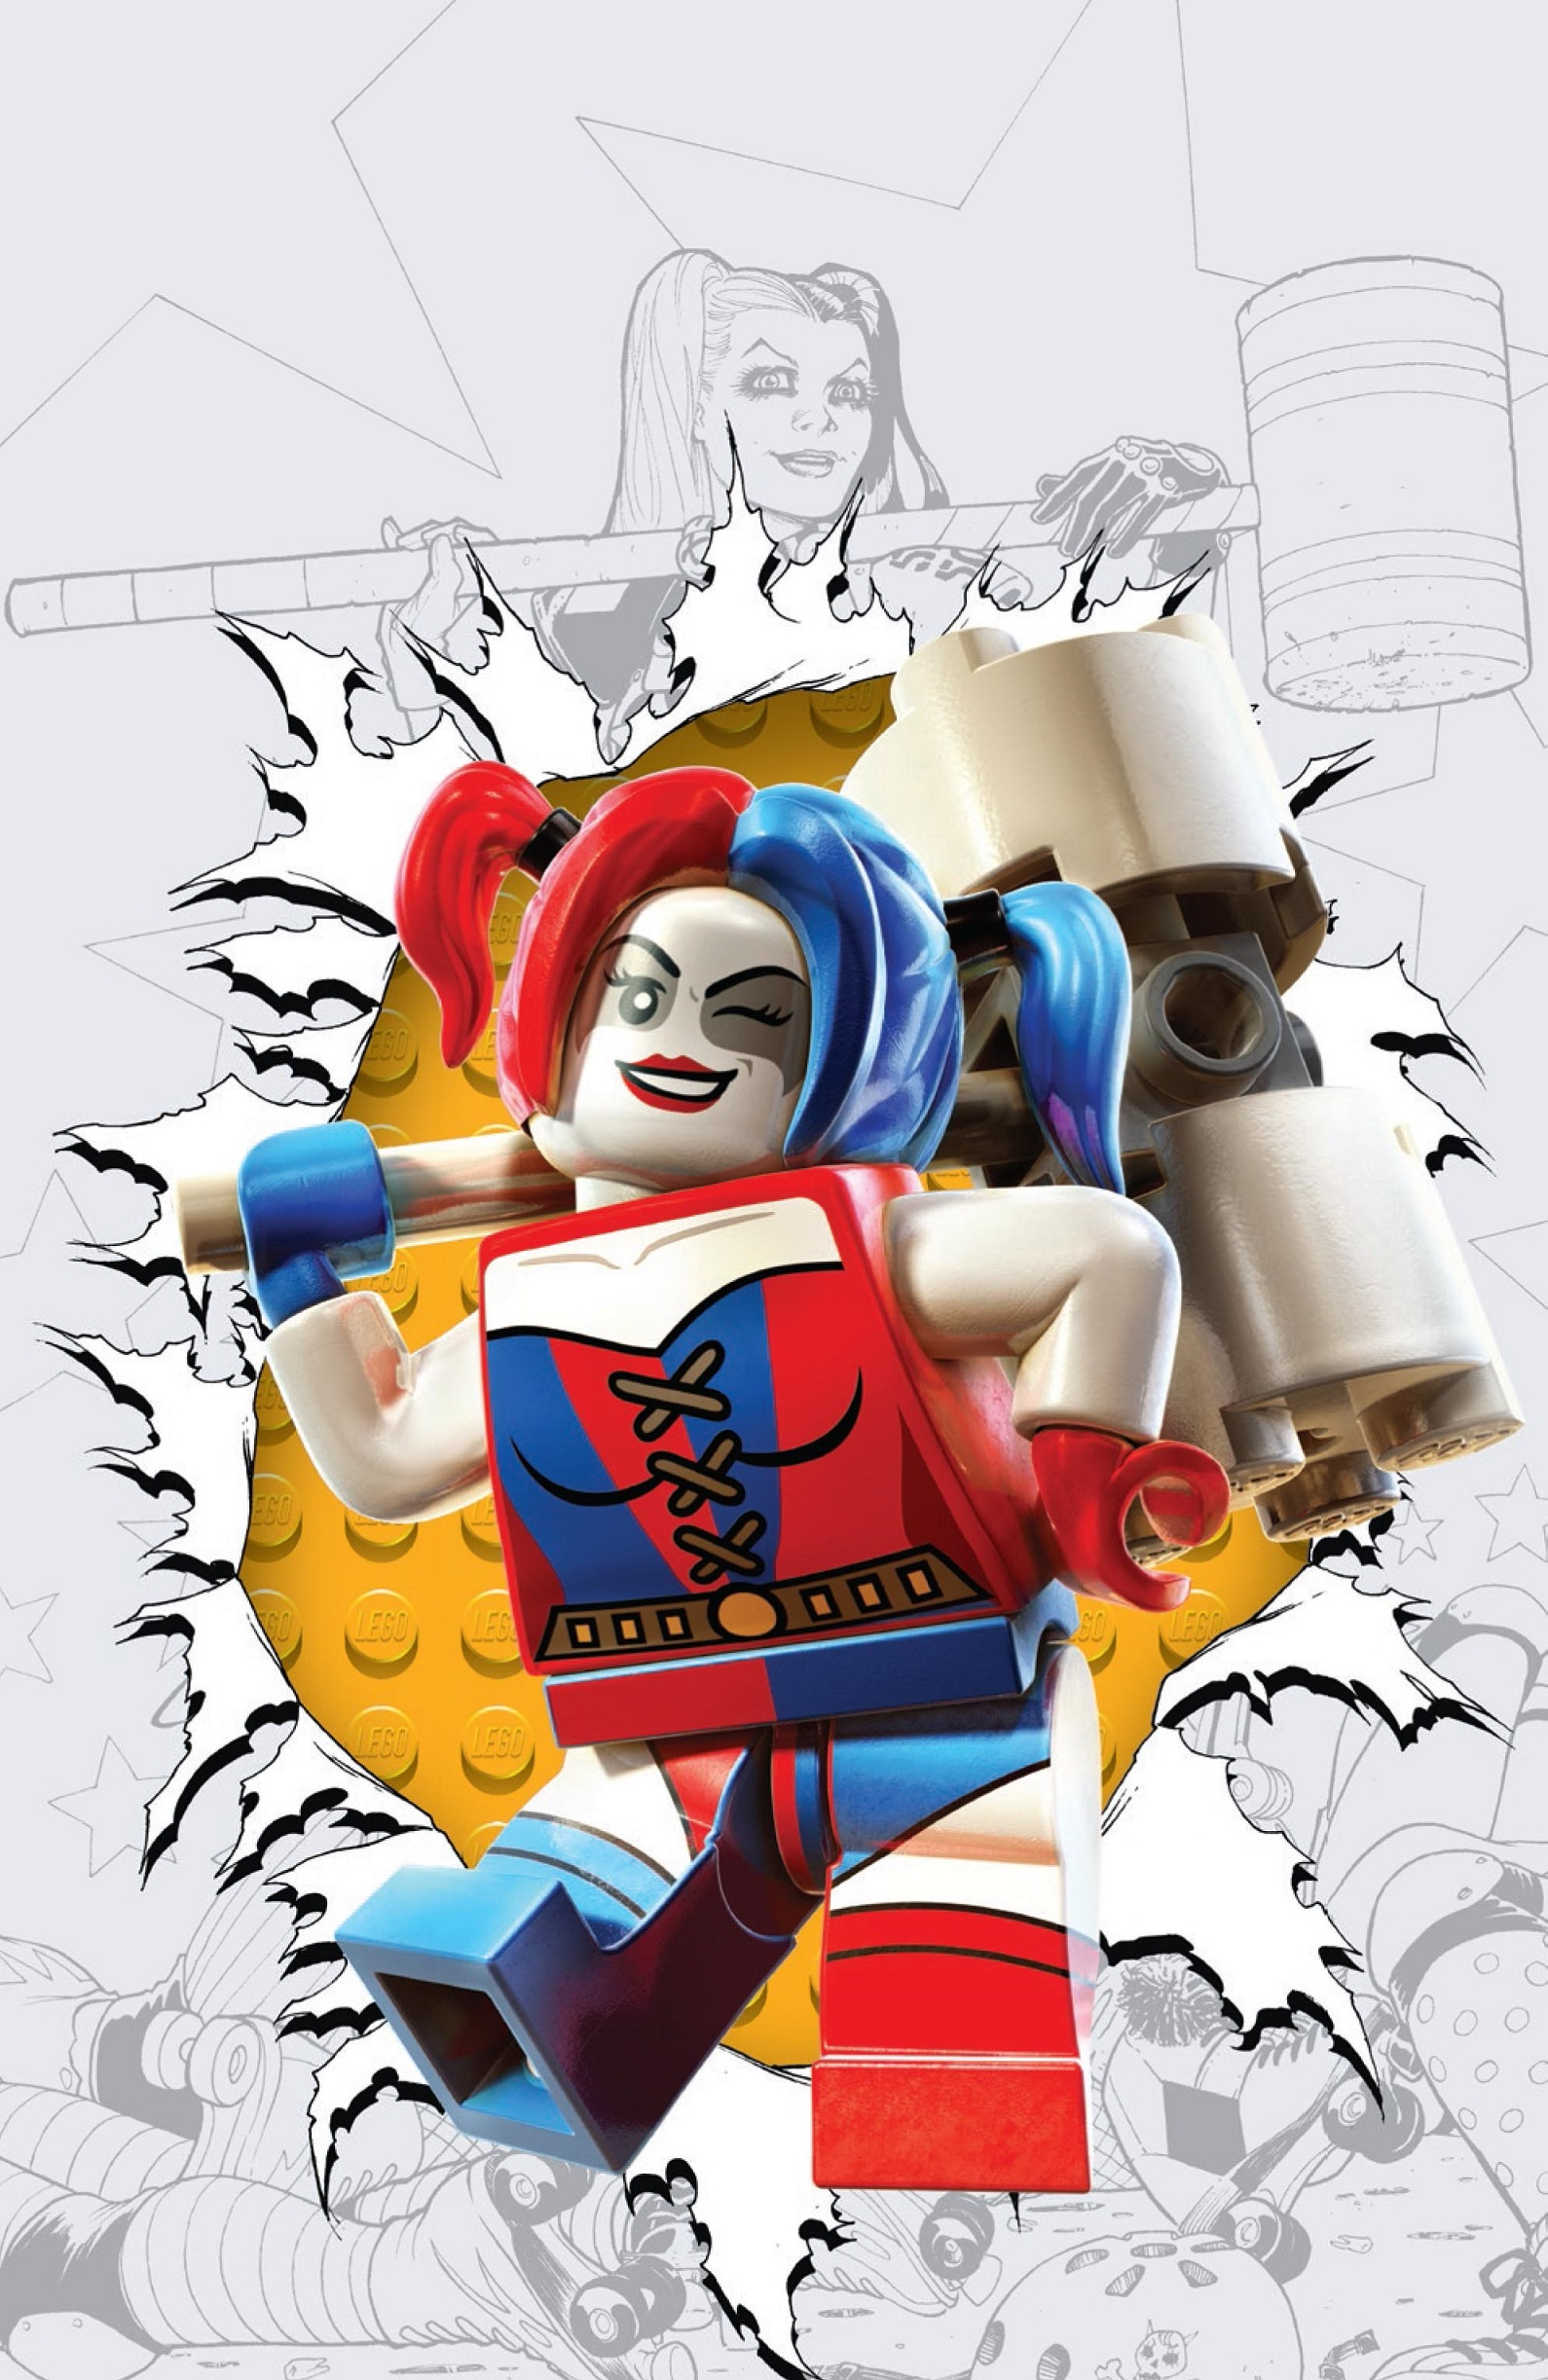 Harley quinn new 52 clipart banner royalty free stock DC comics – GeekMom banner royalty free stock